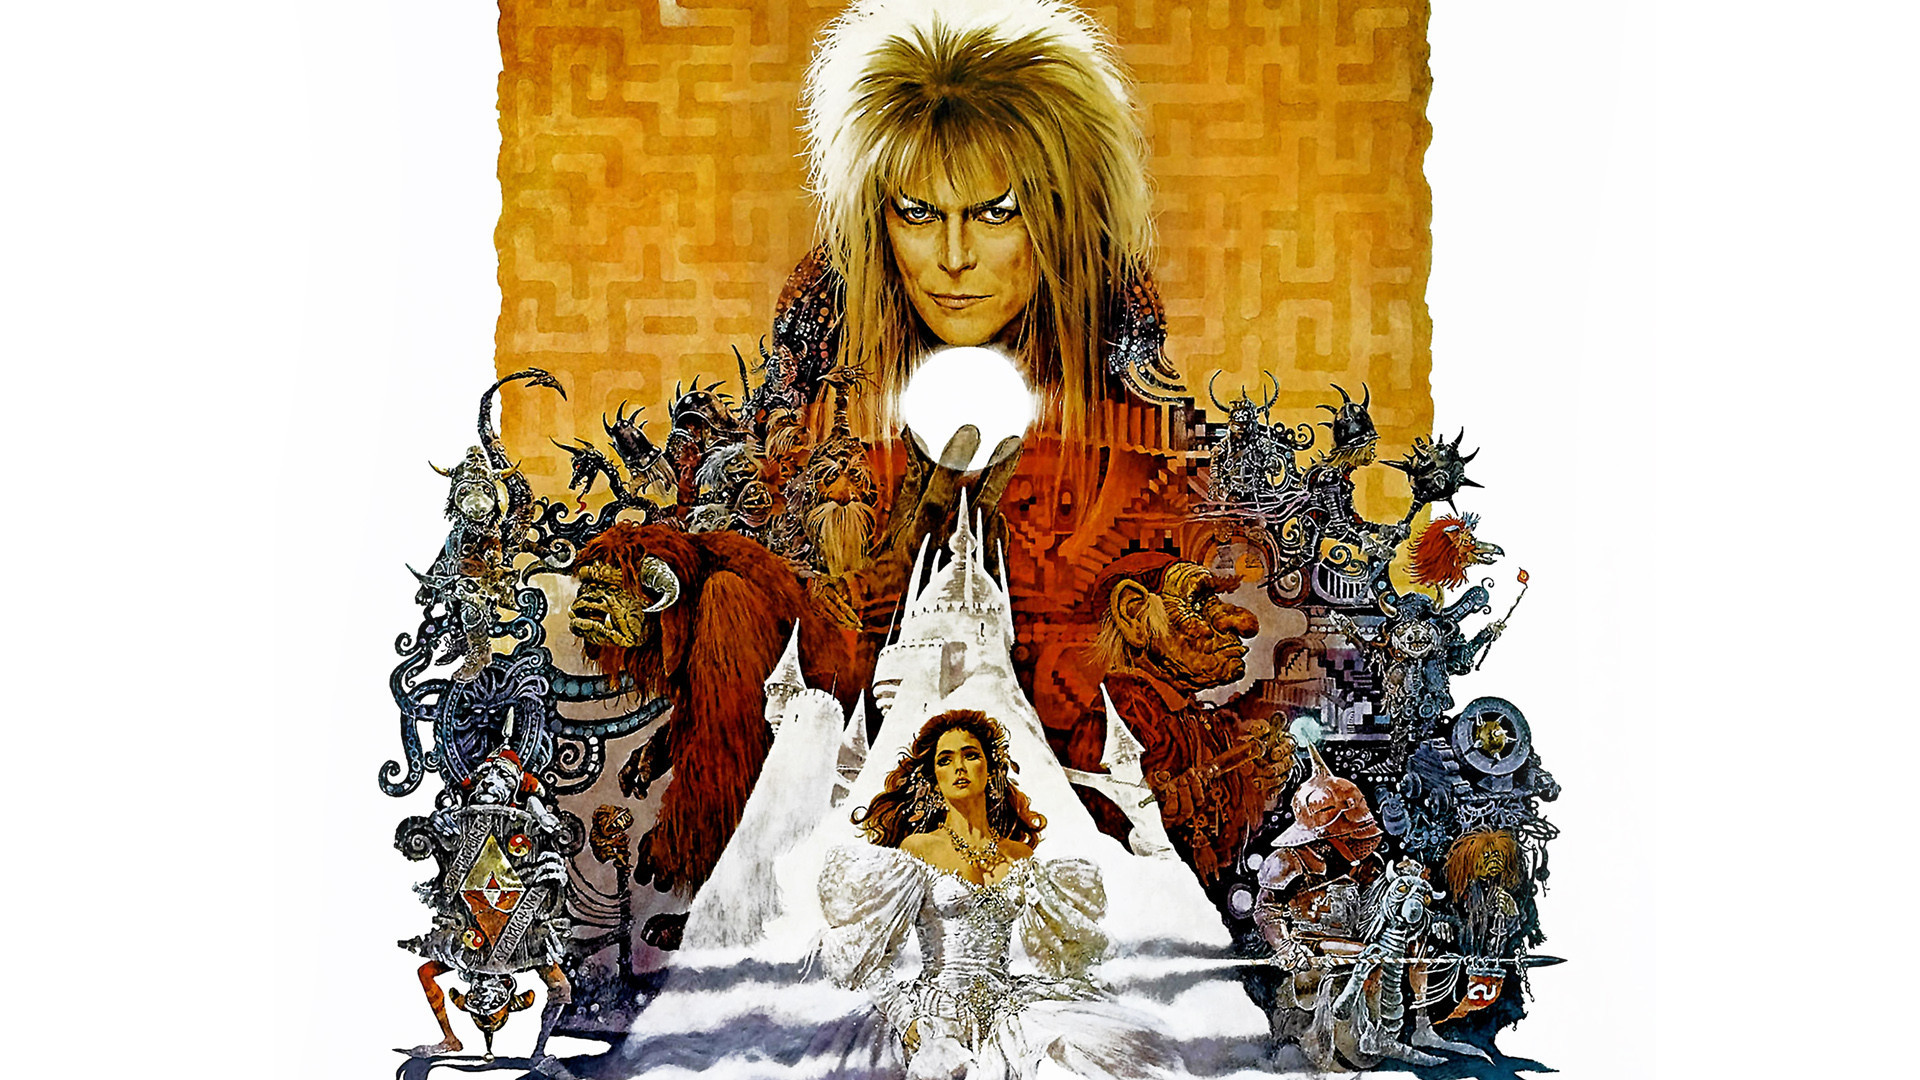 labyrinth computer wallpapers desktop backgrounds